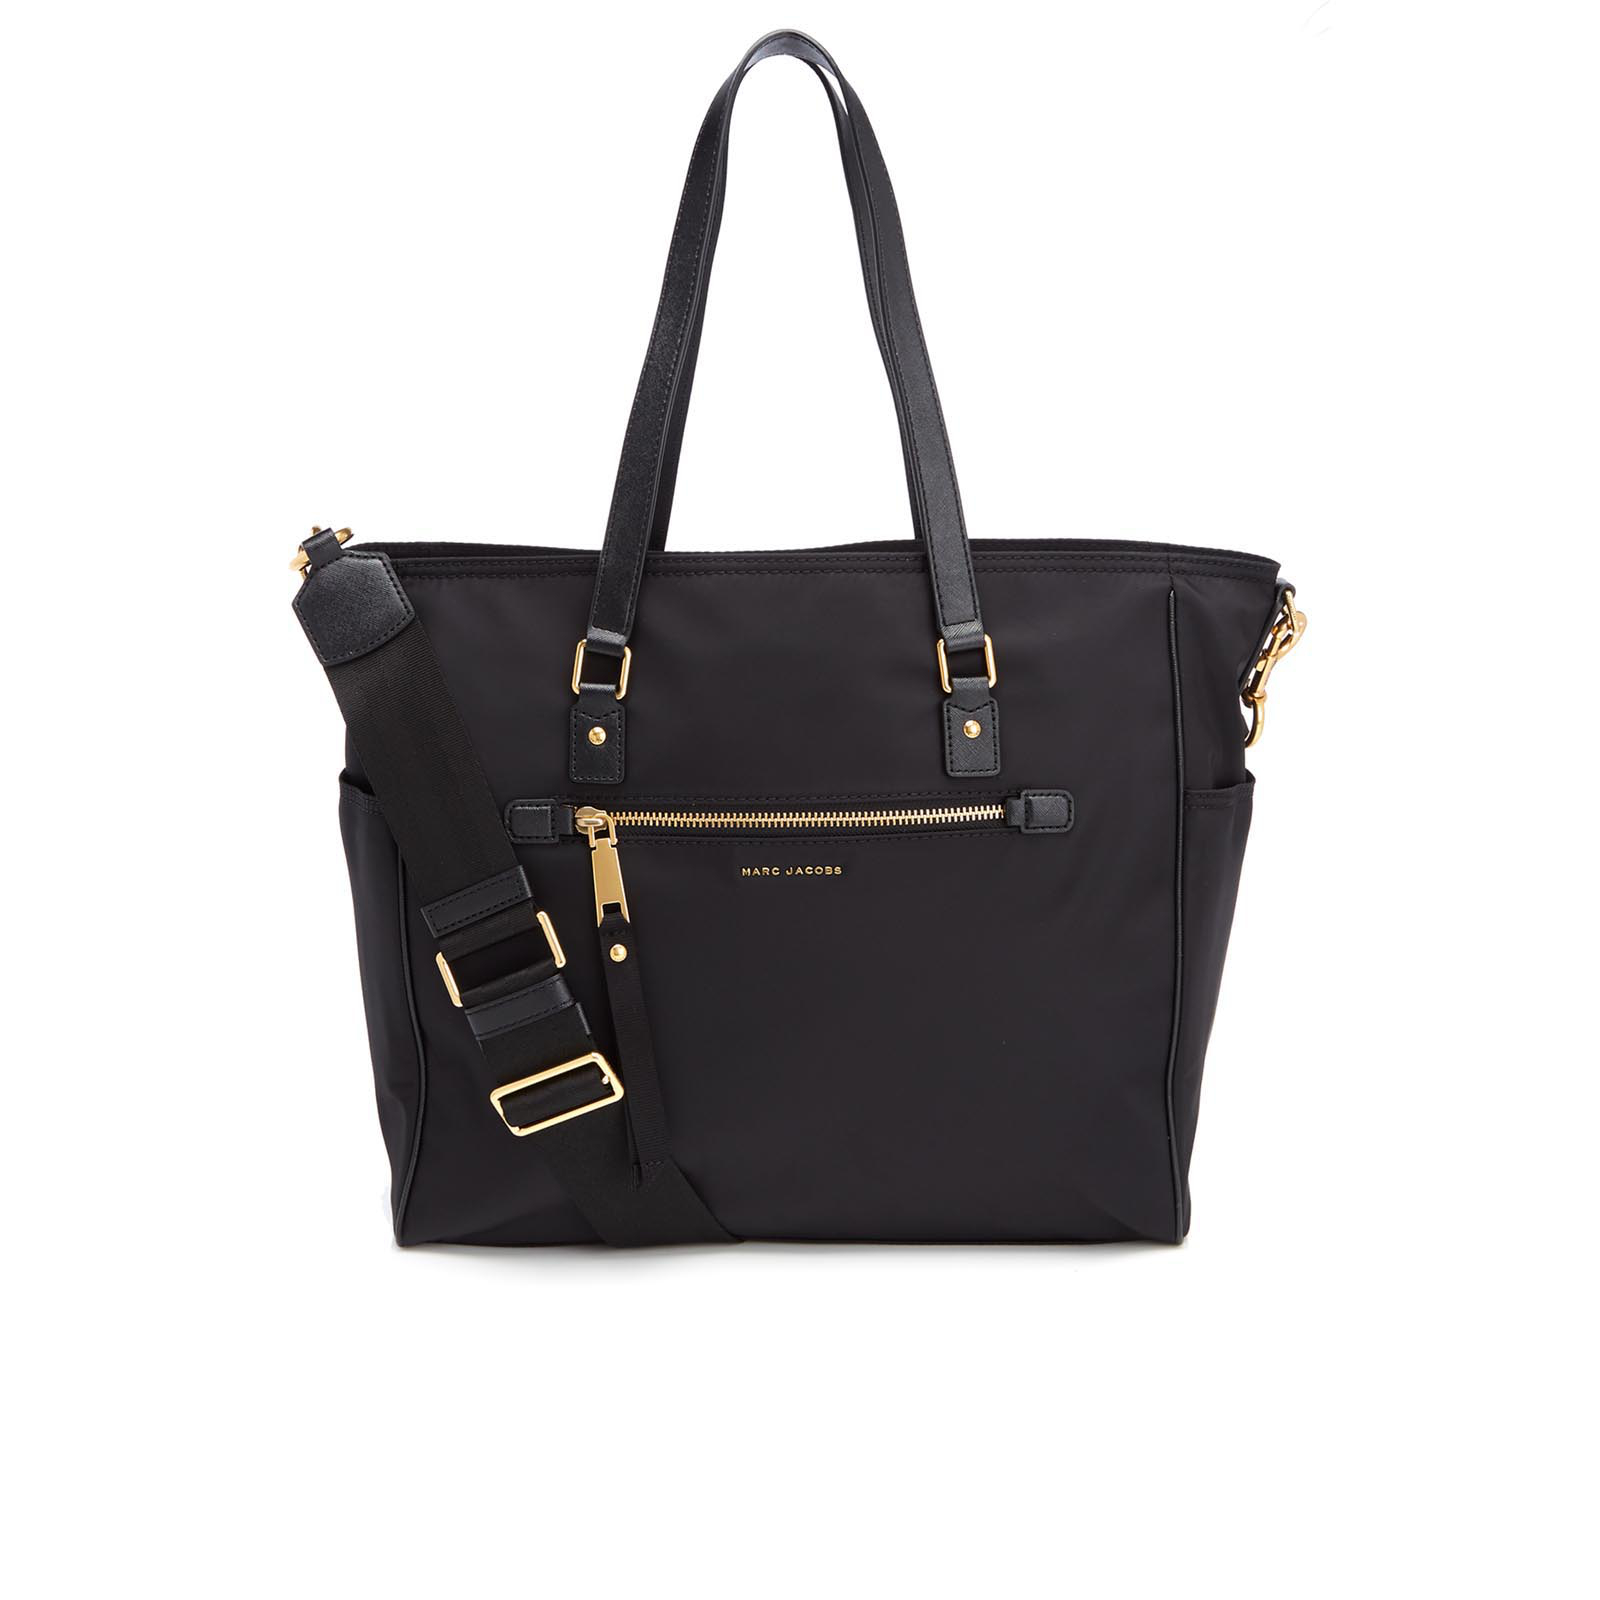 e5aaddcf2823 Marc Jacobs Women s Nylon Baby Bag - Black - Free UK Delivery over £50